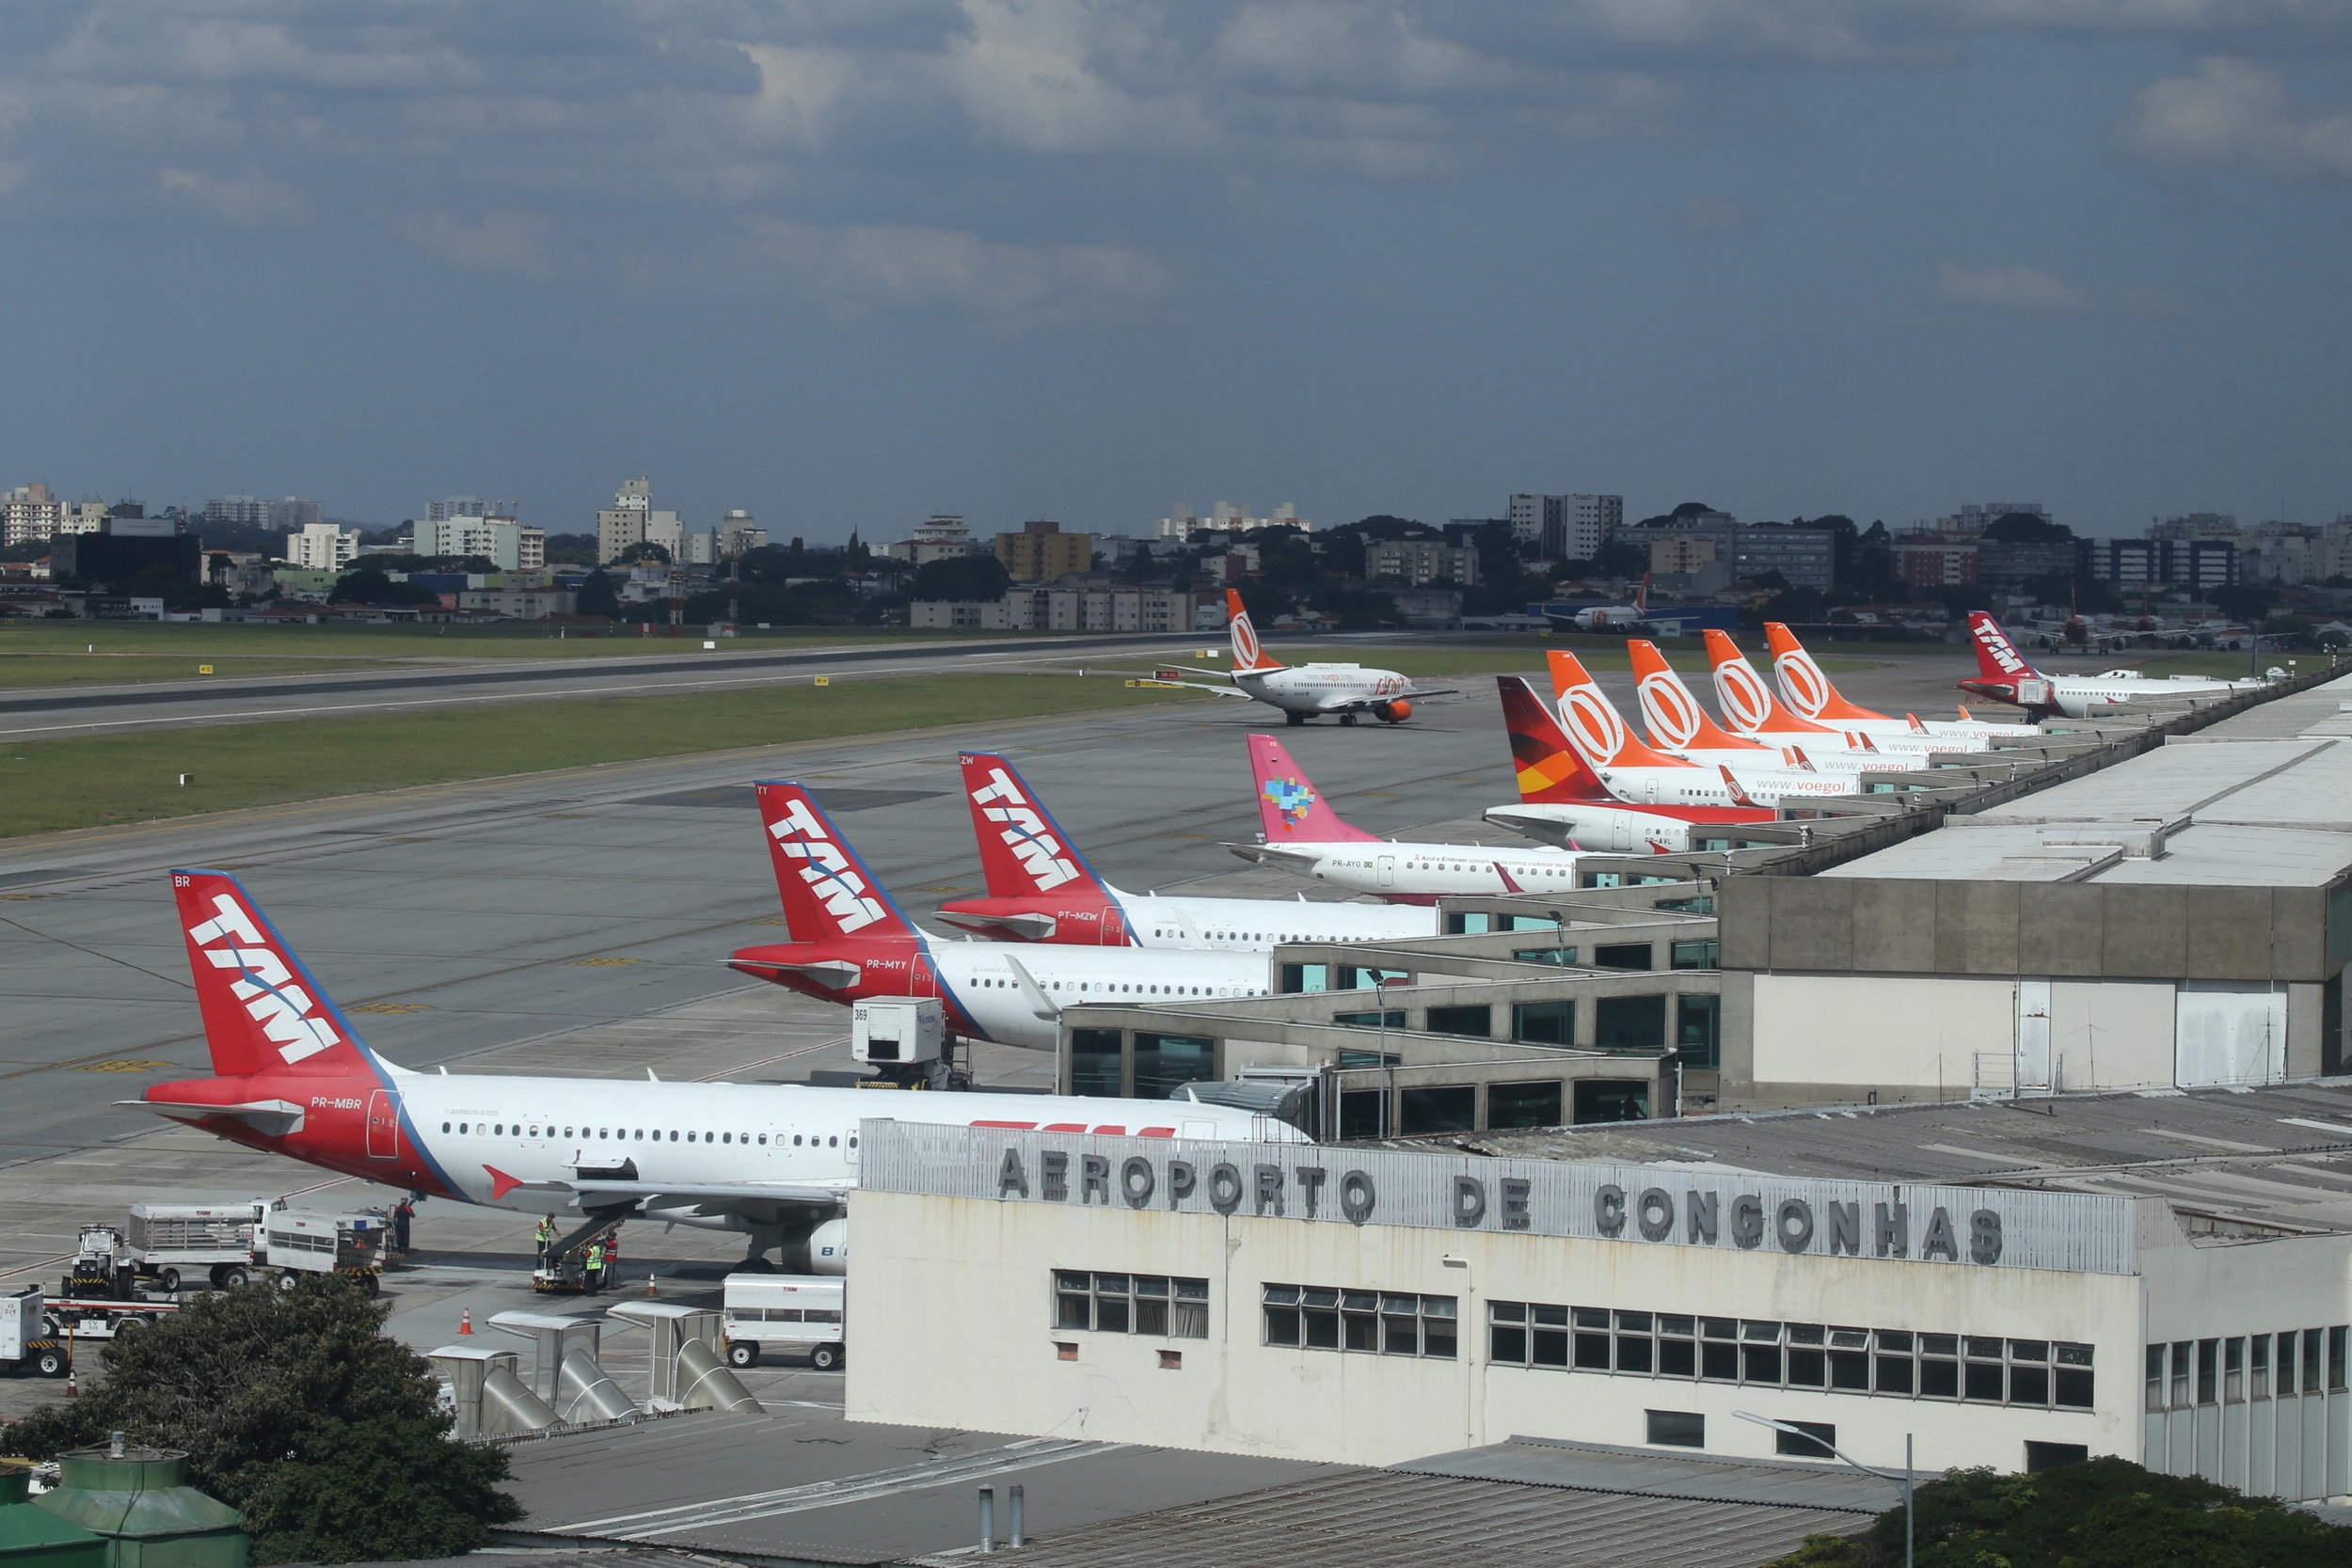 View of the terminal taken from the Slaveiro Slim hotel at Sao Paulo Congonhas Airport 28th April 2019 by John Wood